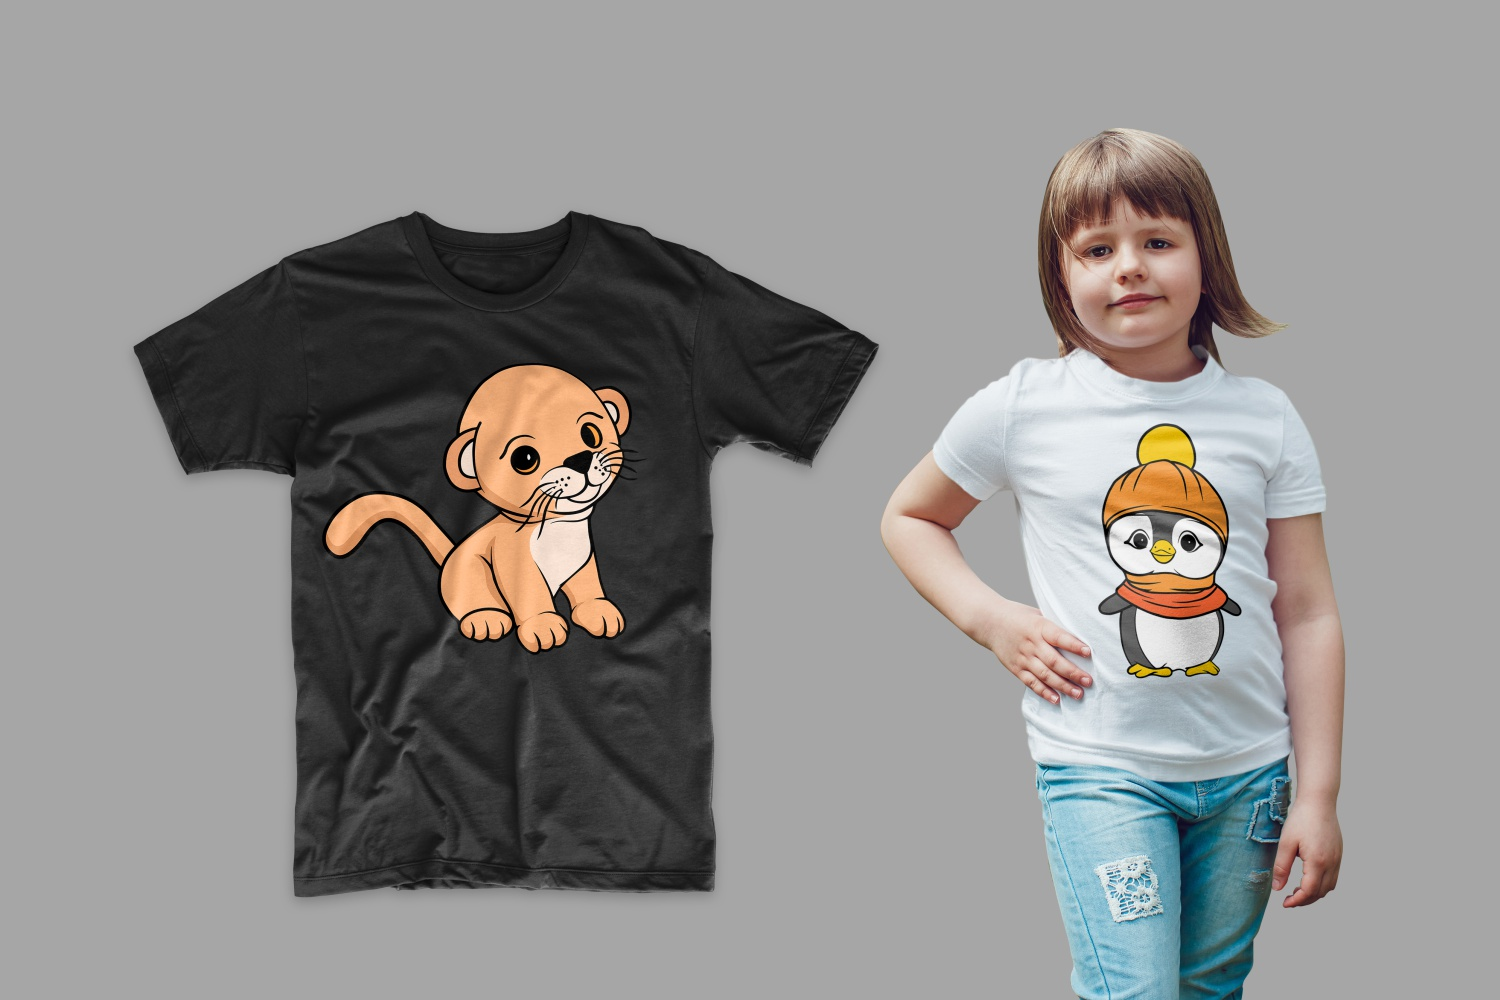 The T-shirt is black with a lion cub and white with a penguin.